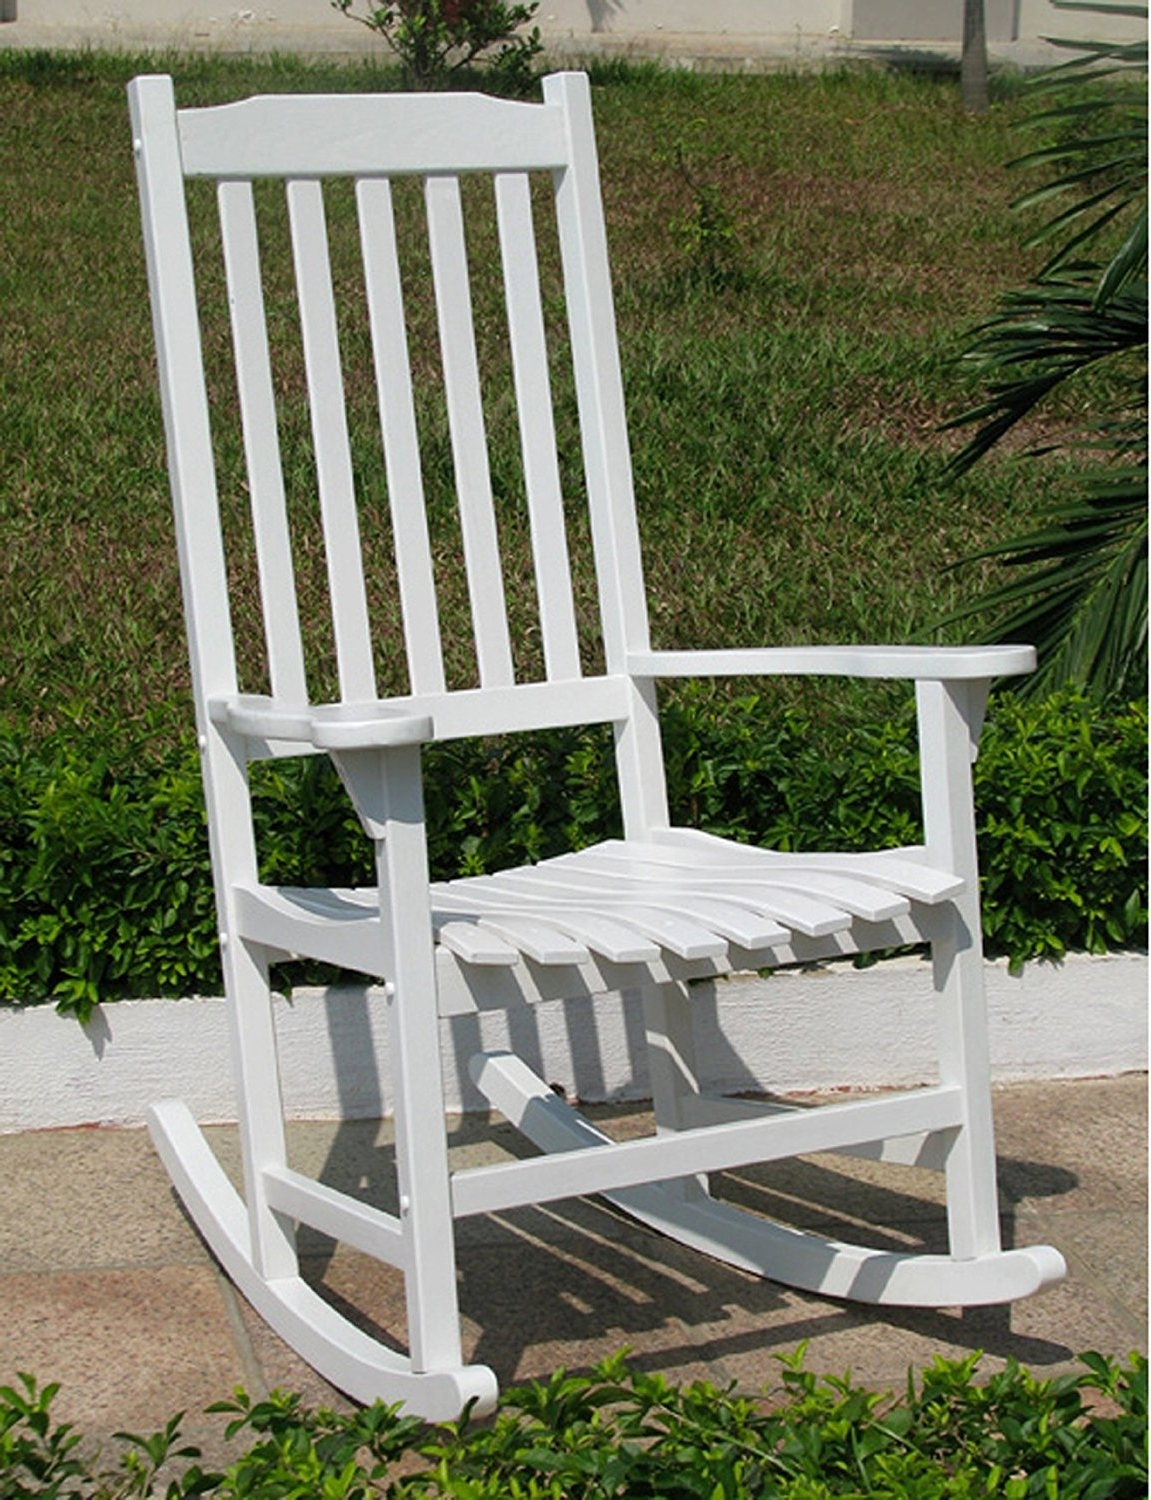 Outdoor Vinyl Rocking Chairs In Latest Patio & Garden : Rocking Chairs For Outdoors Amazing Amazon Merry (View 17 of 20)